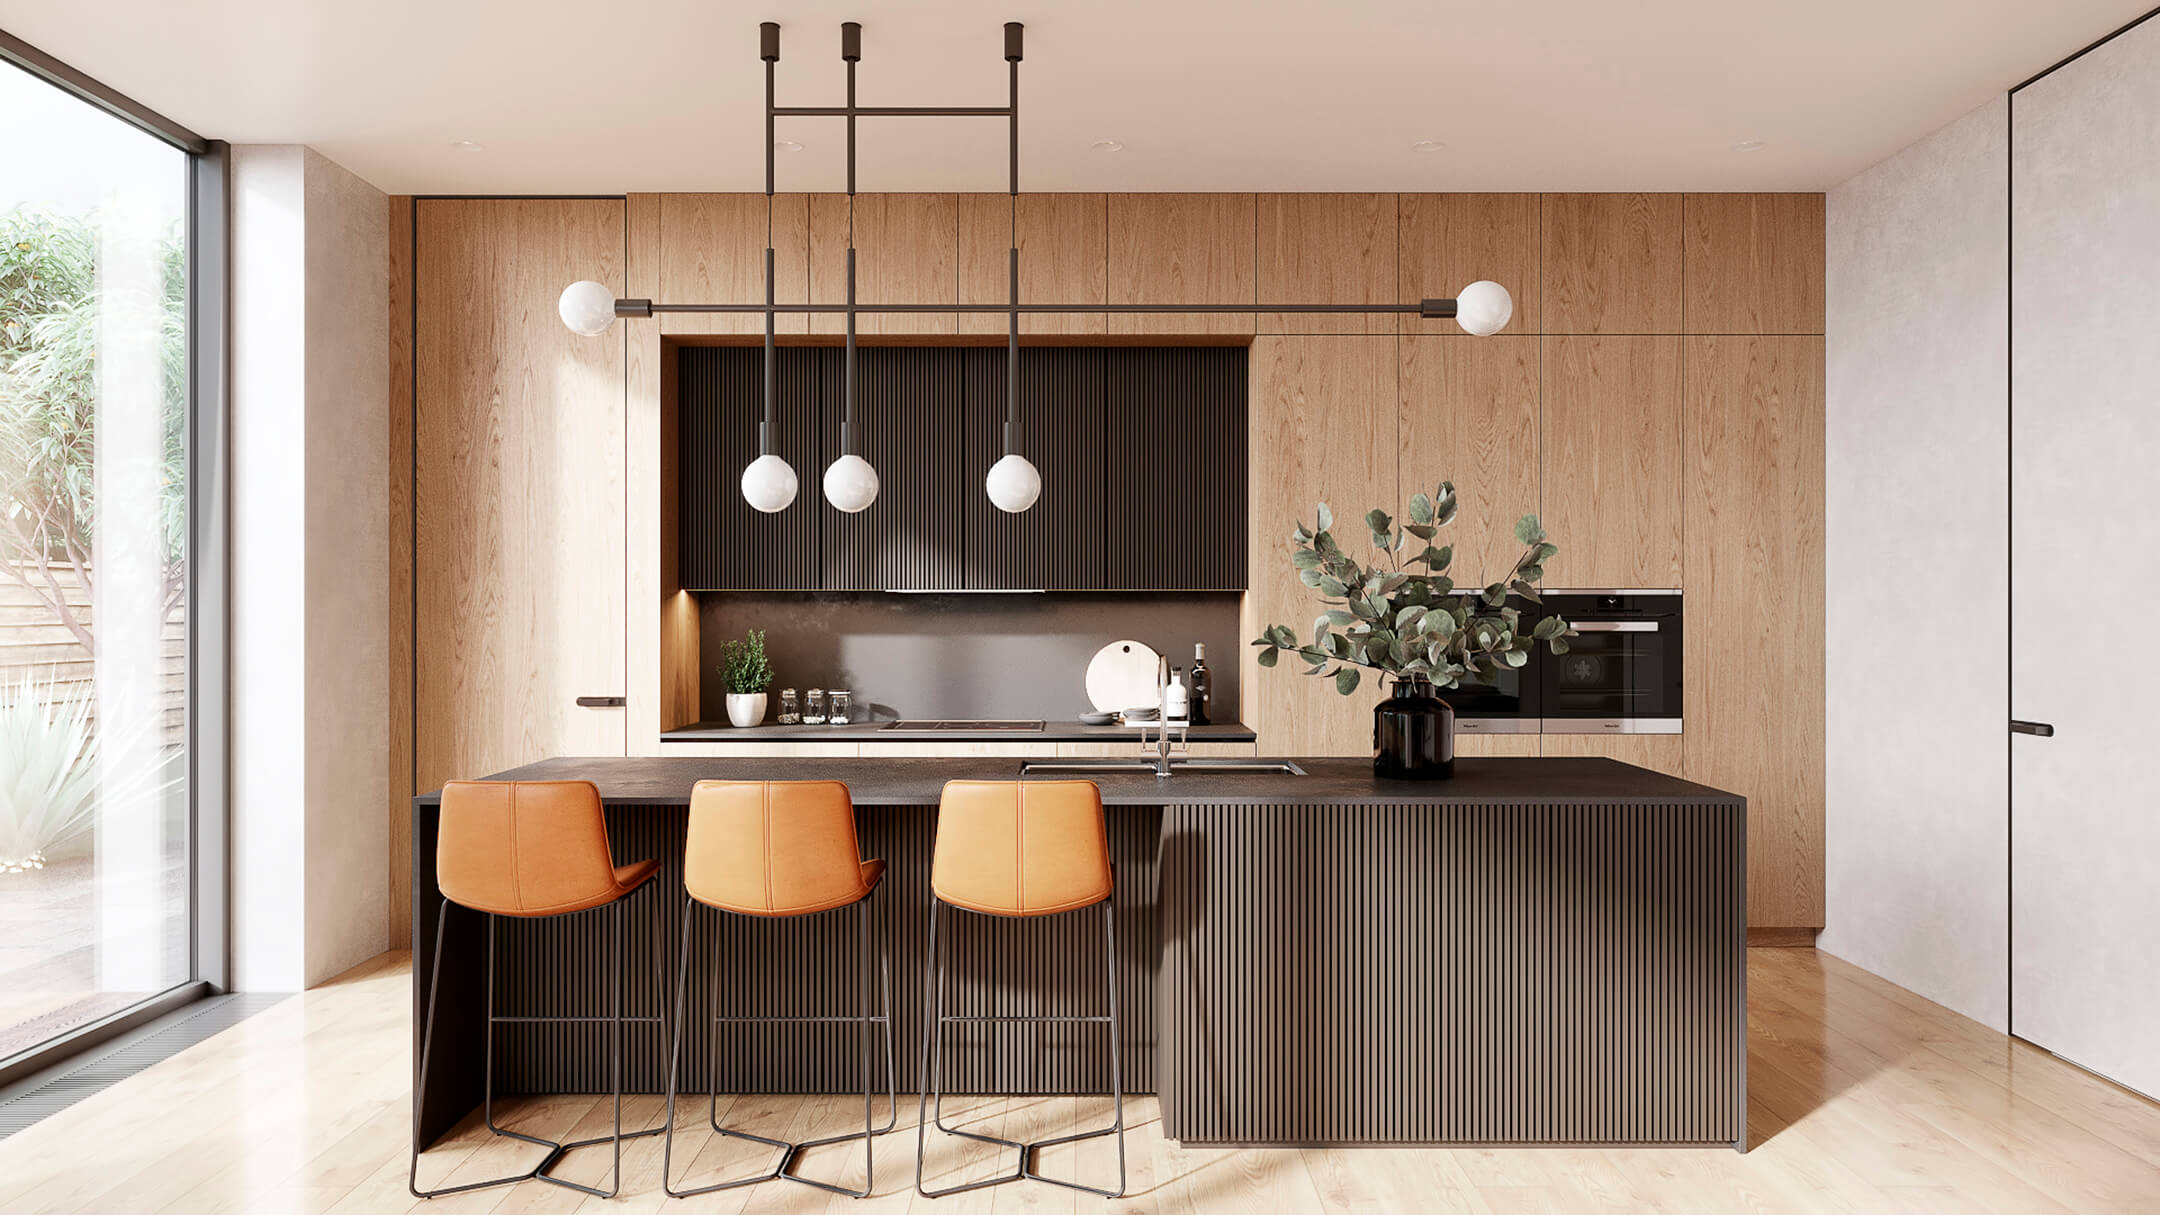 A Photorealistic Render of a Kitchen